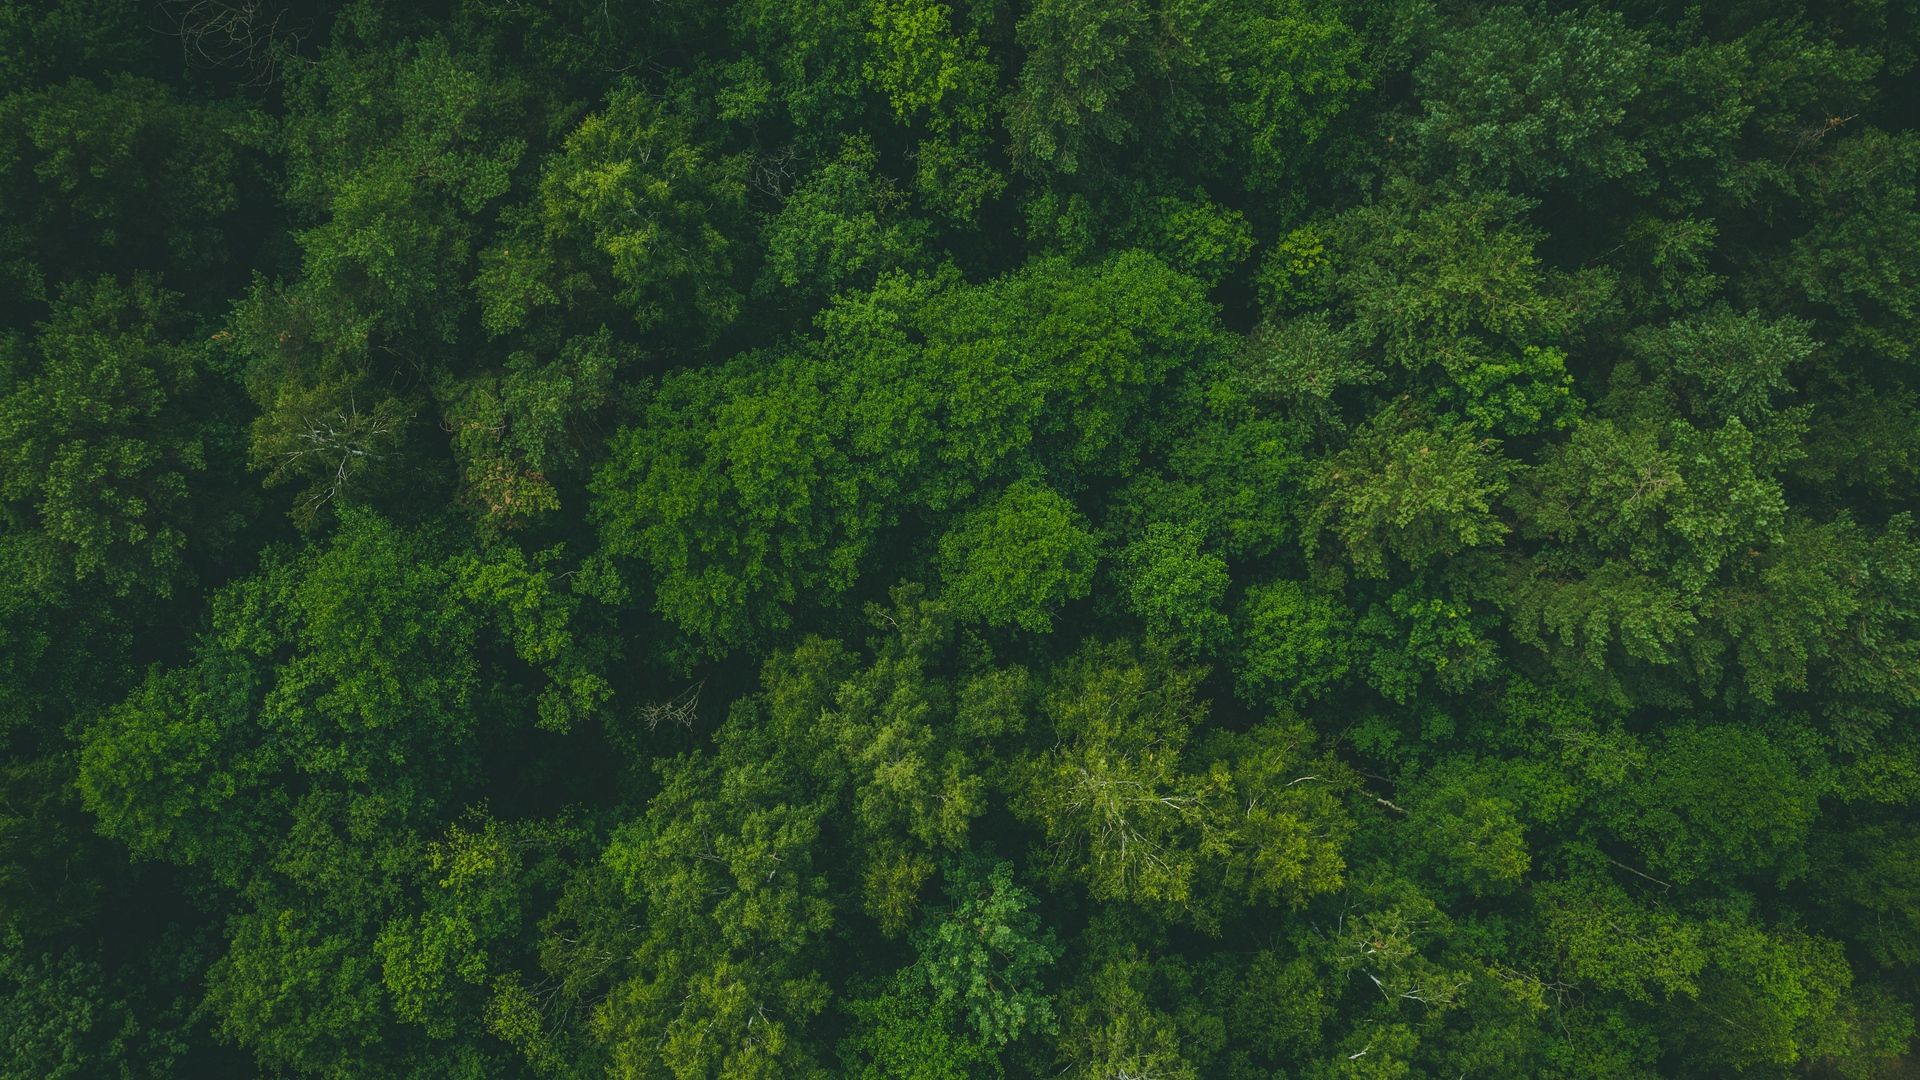 Wallpaper Trees Forest Treetops Aerial View Green Aerial View Tree Forest Aerial Hd wallpaper forest trees aerial view